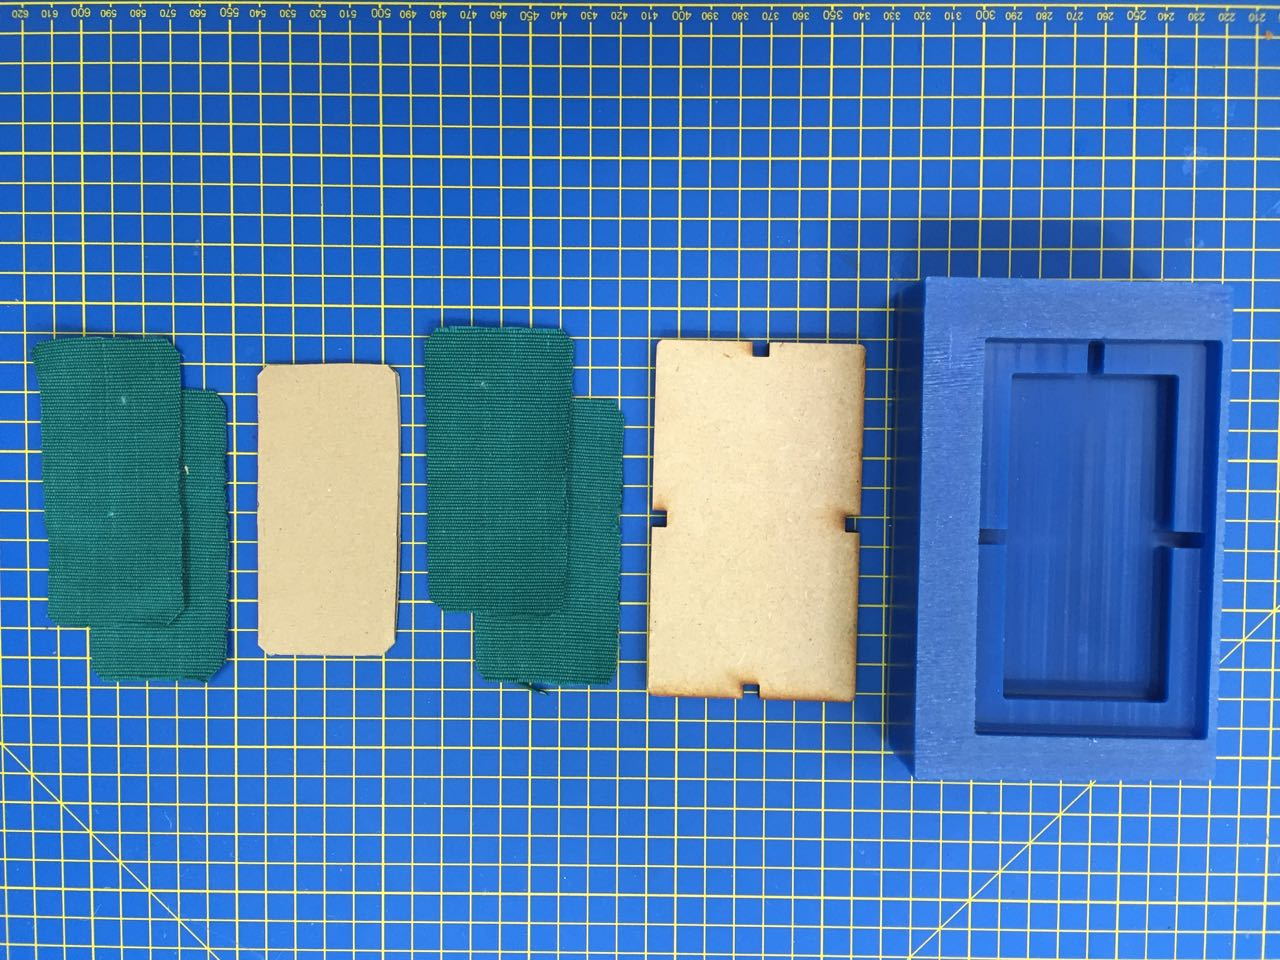 Mold and material parts